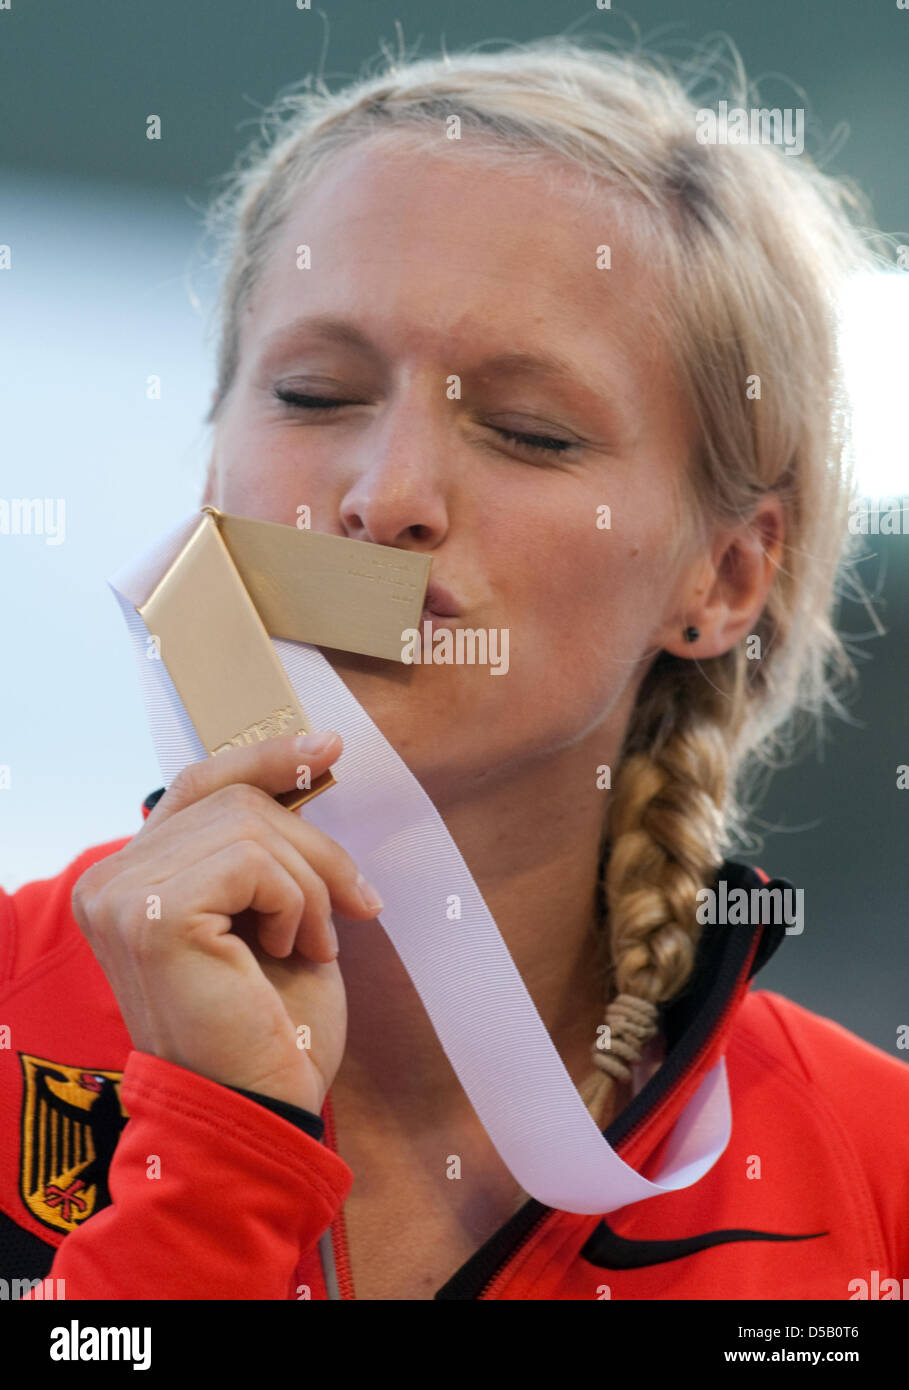 The German sprints gold medalist Verena Sailer kisses her medal for her victory in the 100-metre sprints at the - Stock Image